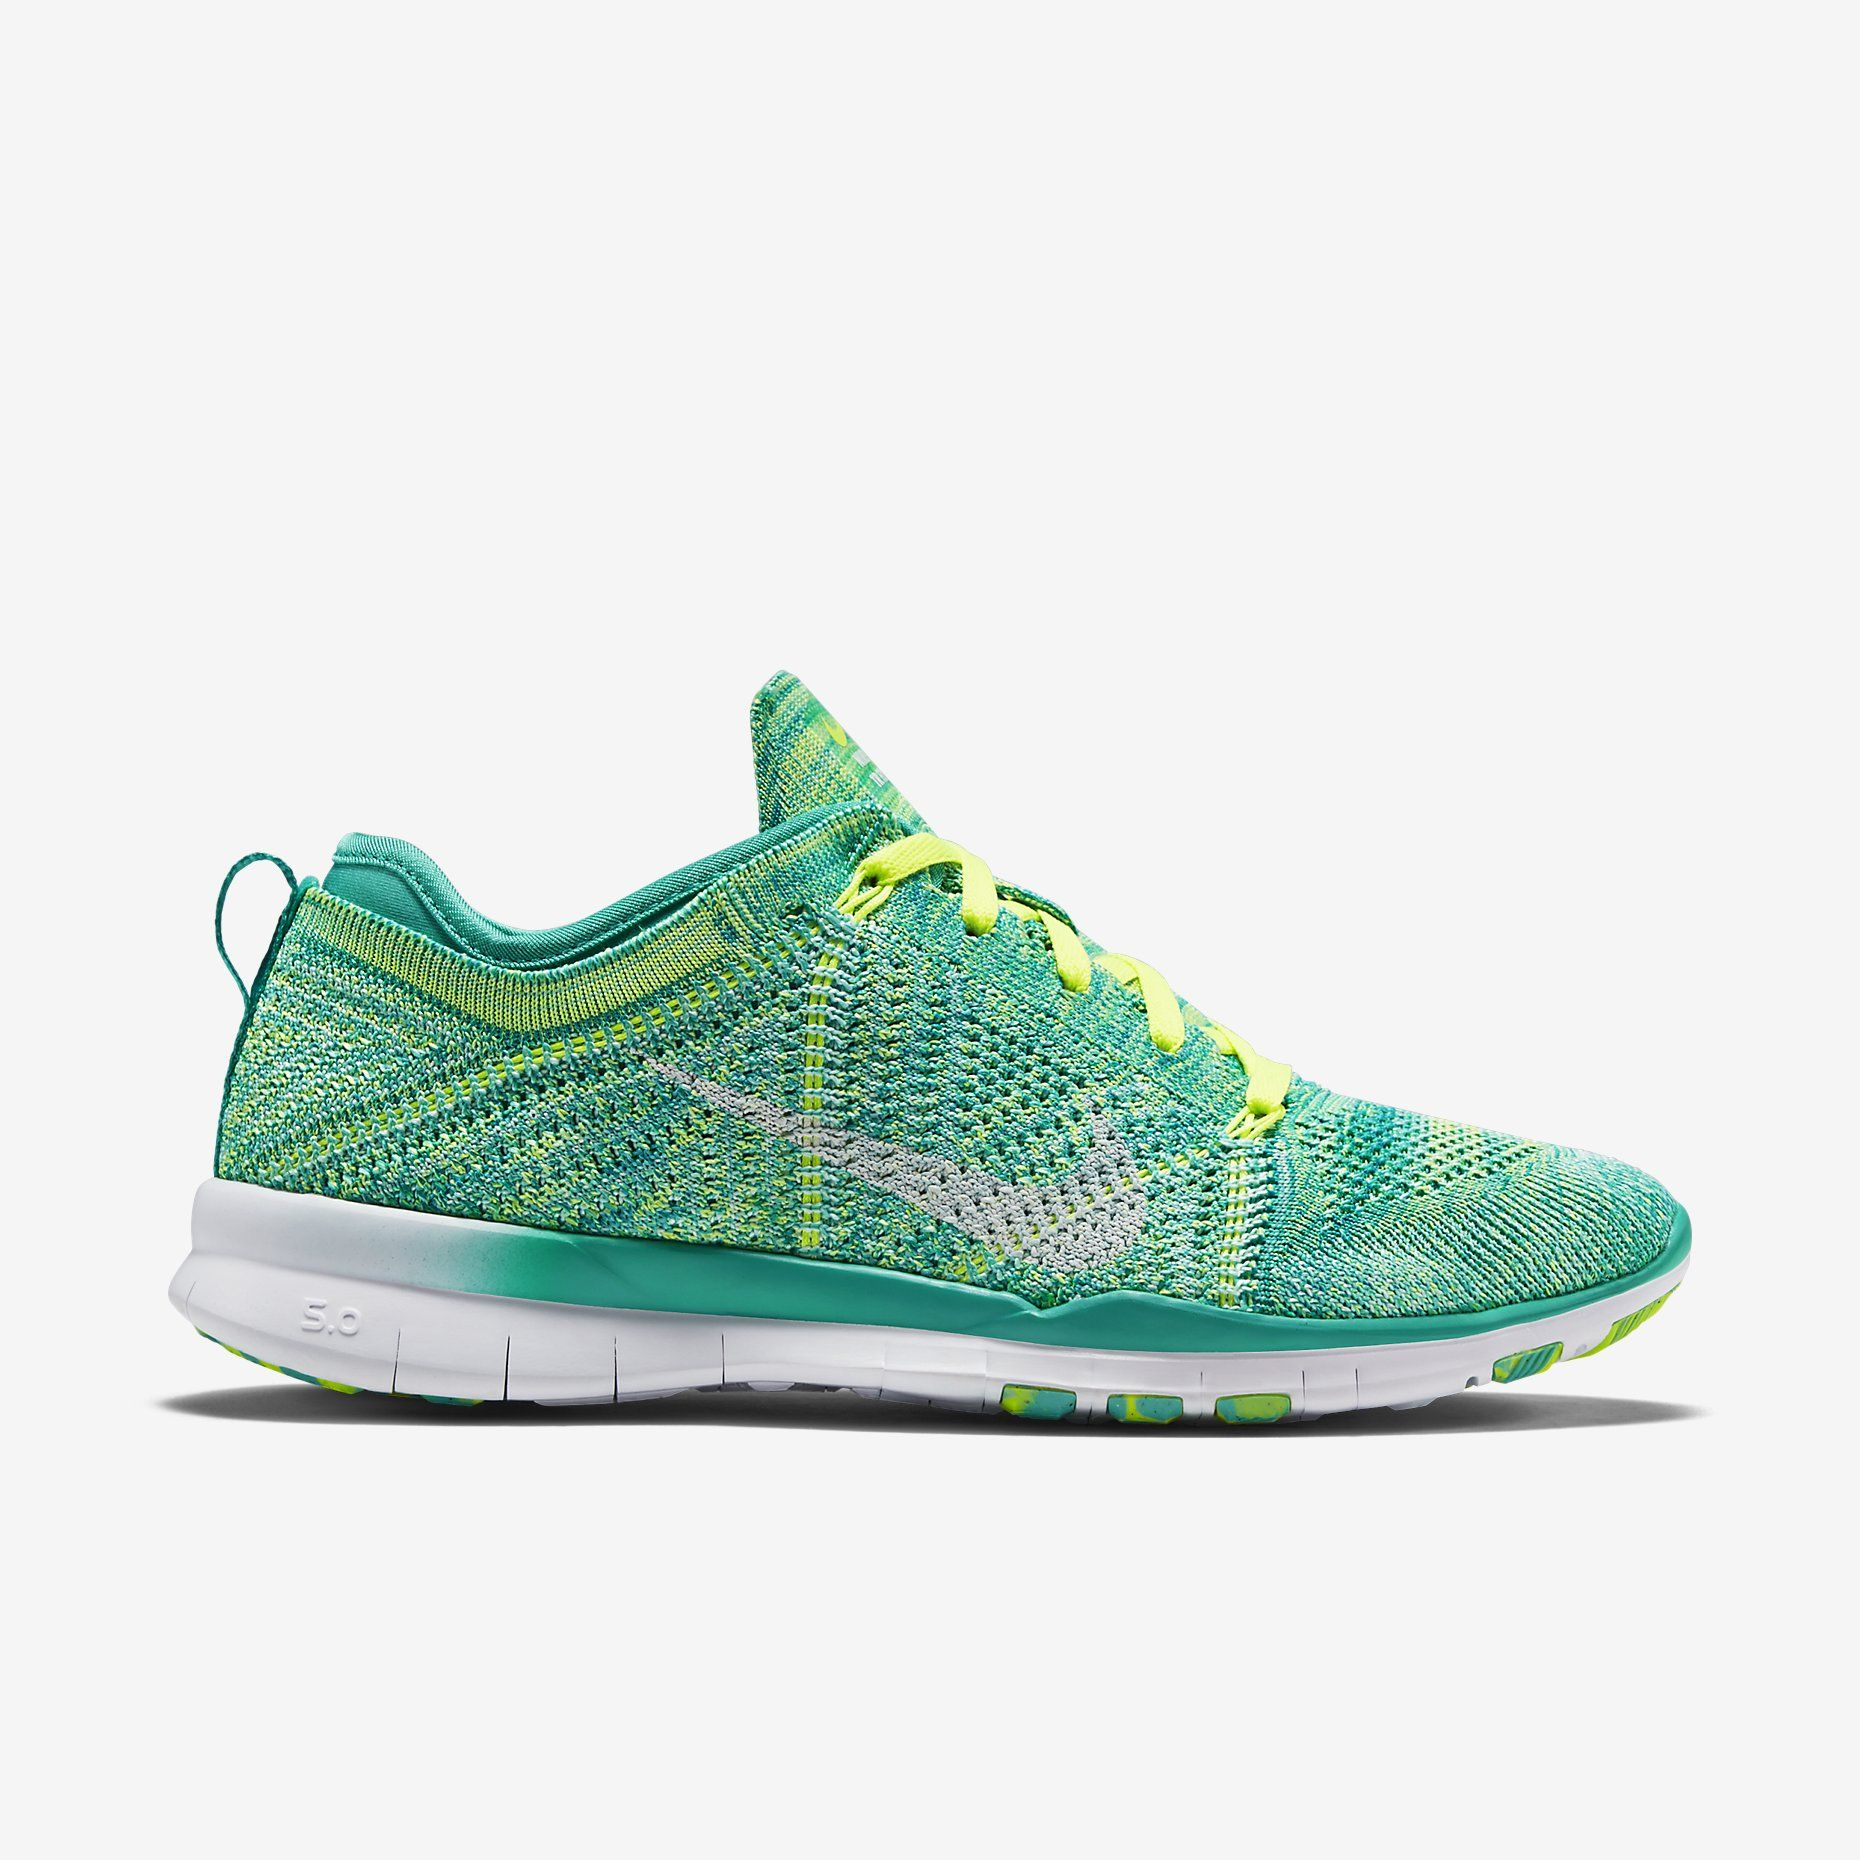 new product 1a3fa 56f84 Nike Free TR 5 Flyknit Womens Training Shoe. Nike Store